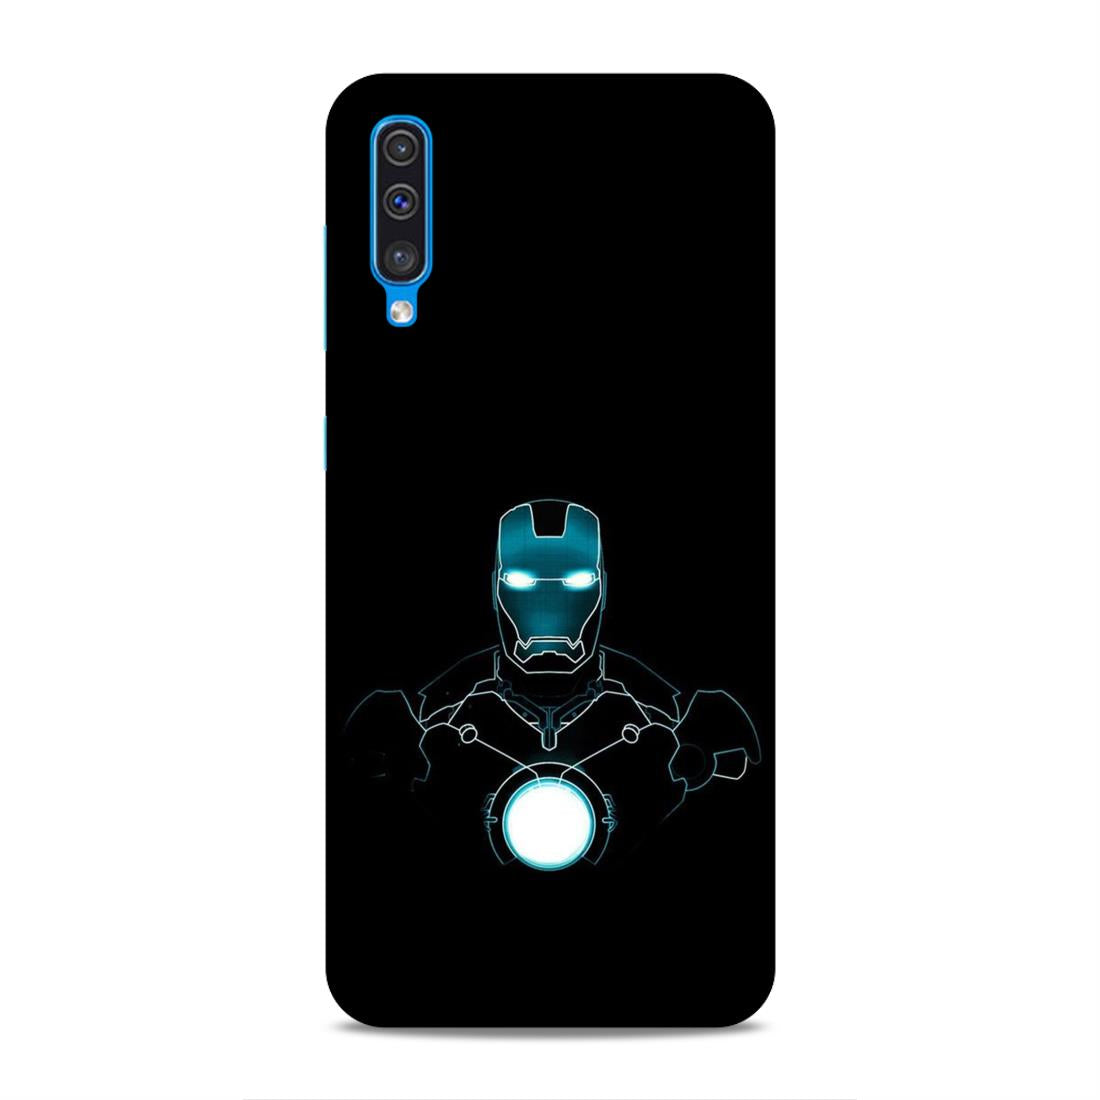 Phone Cases,Samsung Phone Cases,Samsung A50,Iron Man